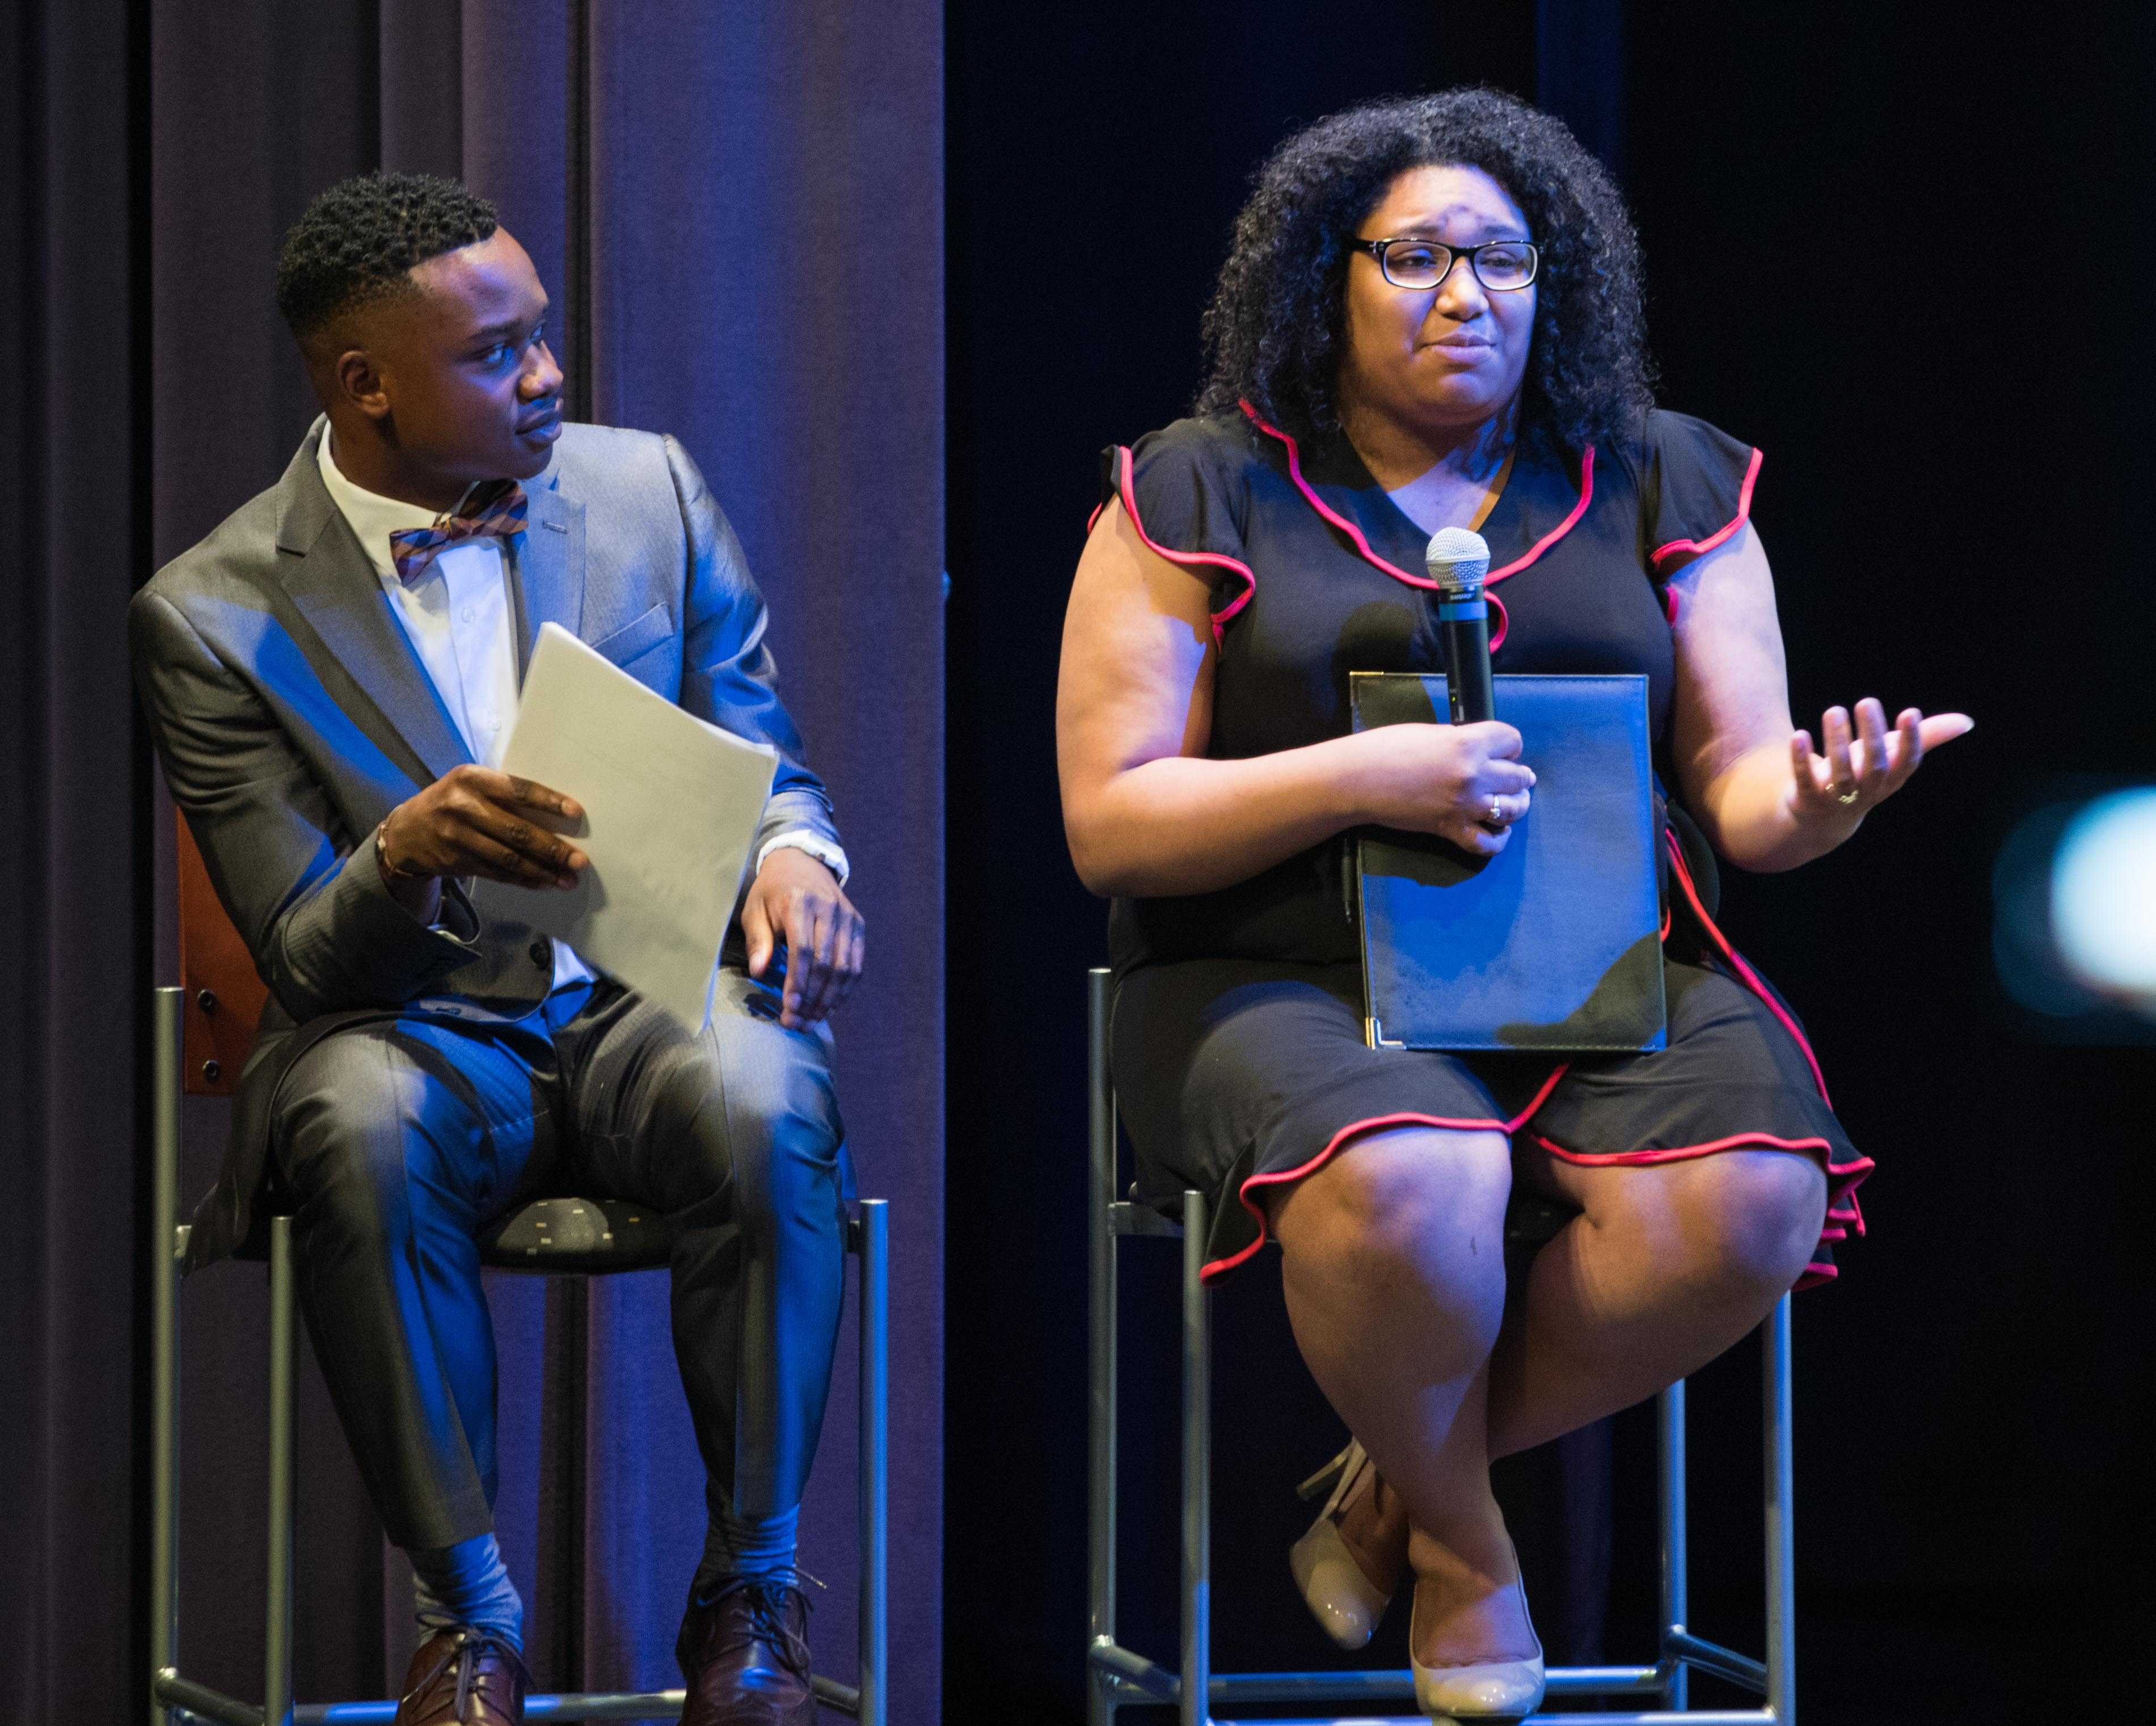 SGA presidential candidate Tracia Banuelos and her running mate Ricky Oshakuade answers questions during the SGA presidential debate held in CAC theater.